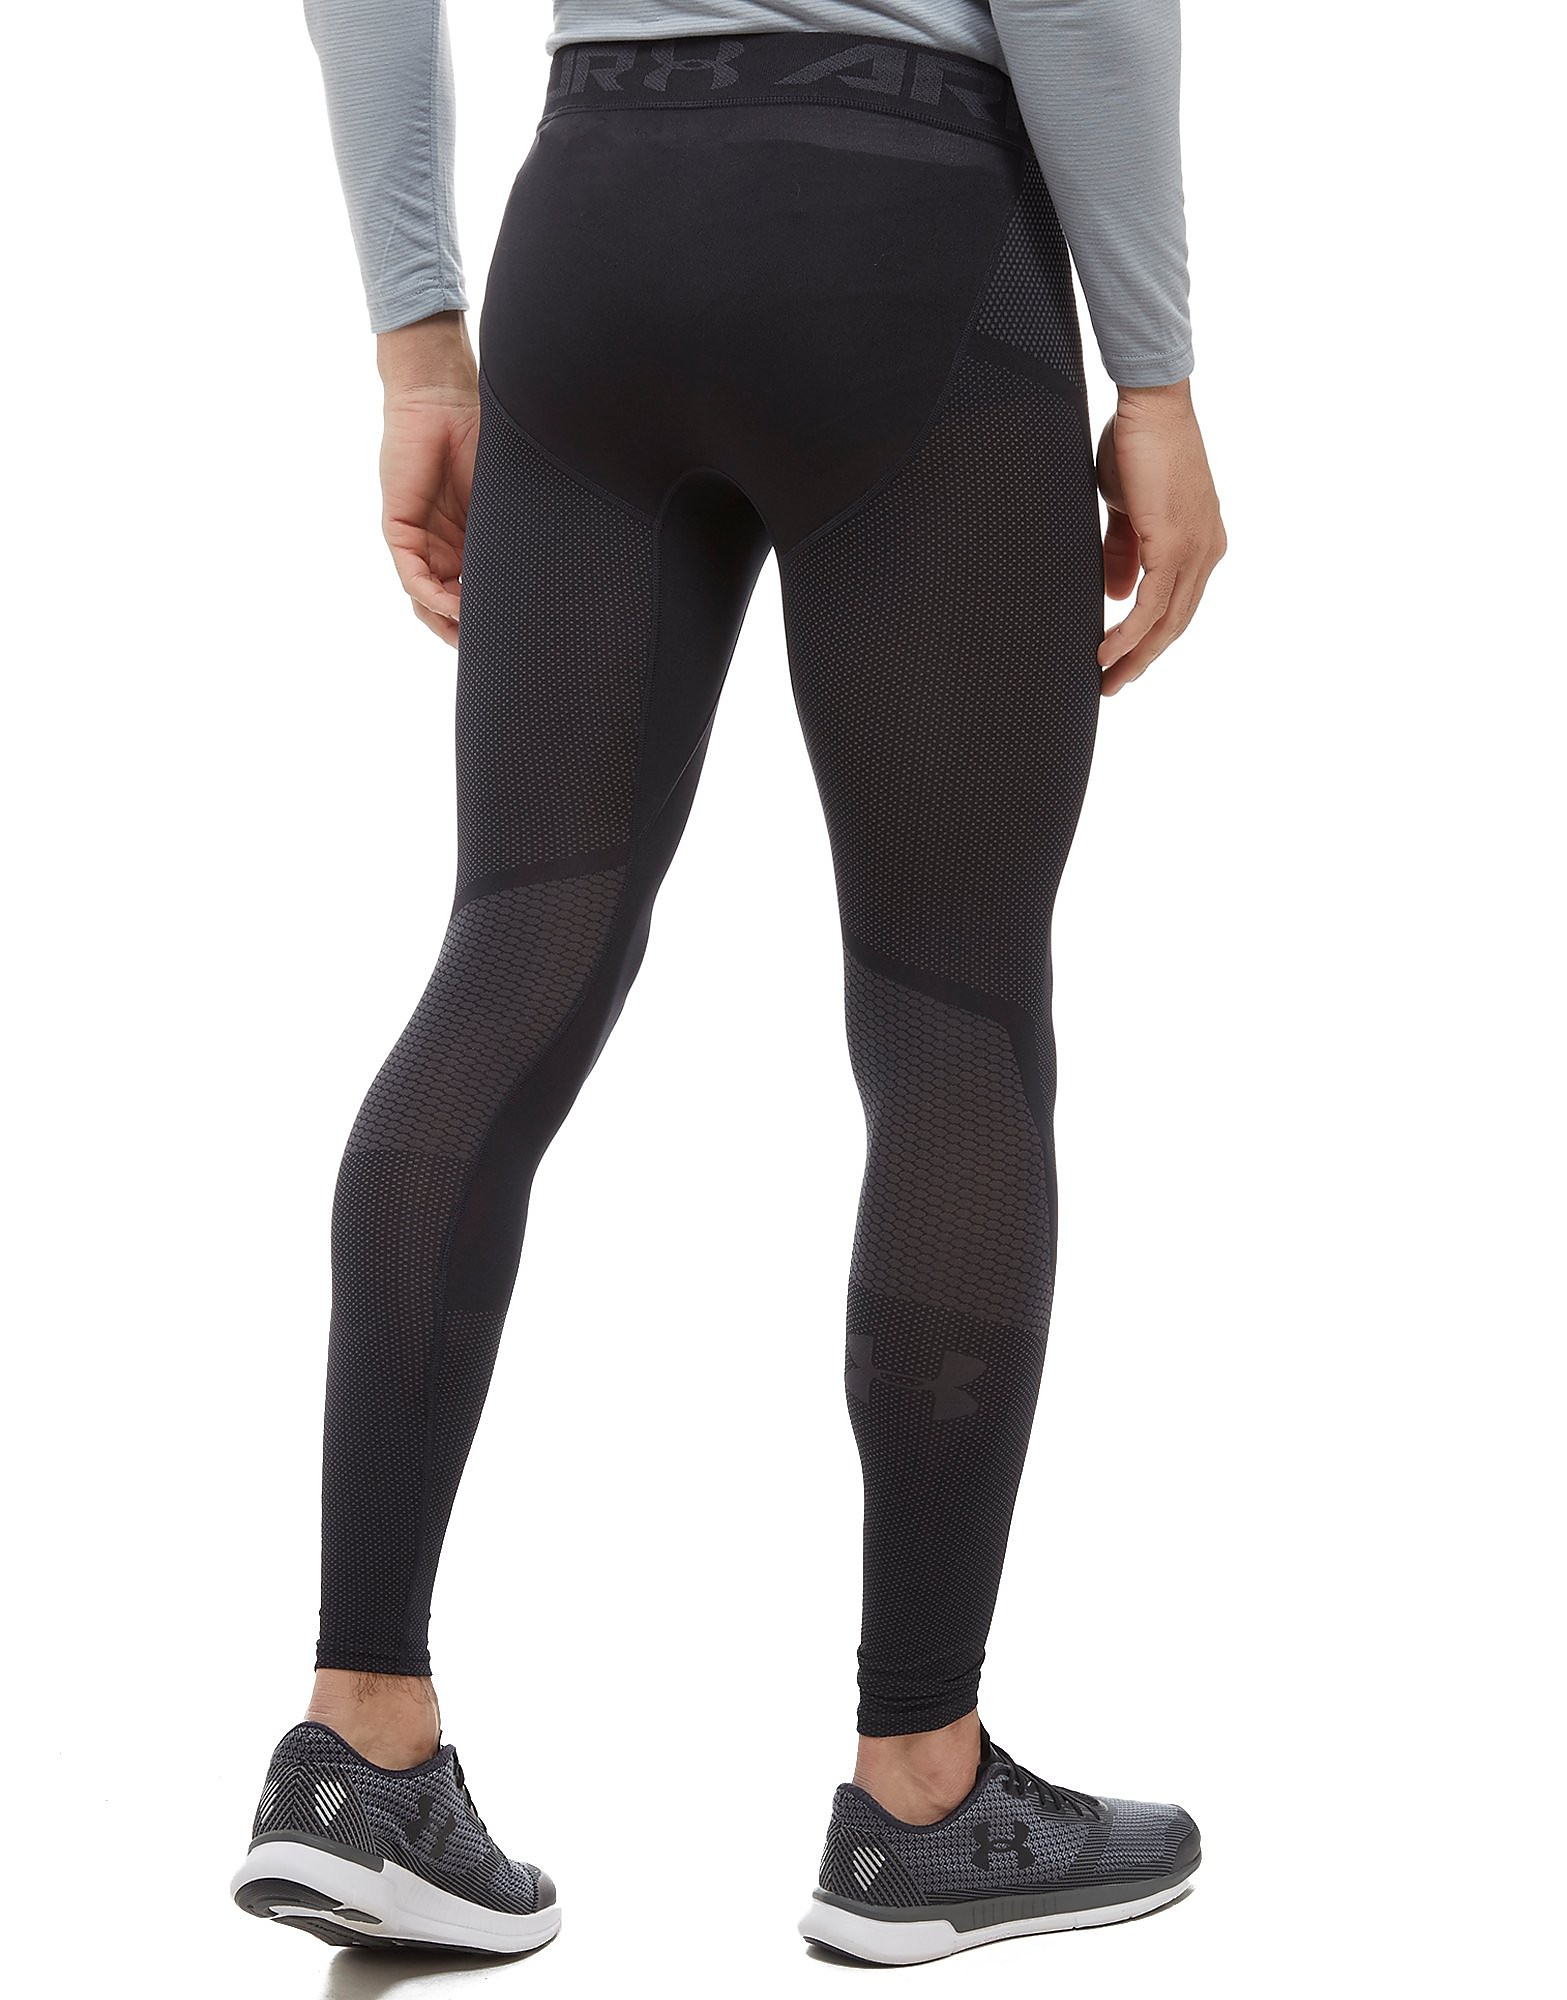 Under Armour Threadborne Seamless Tights